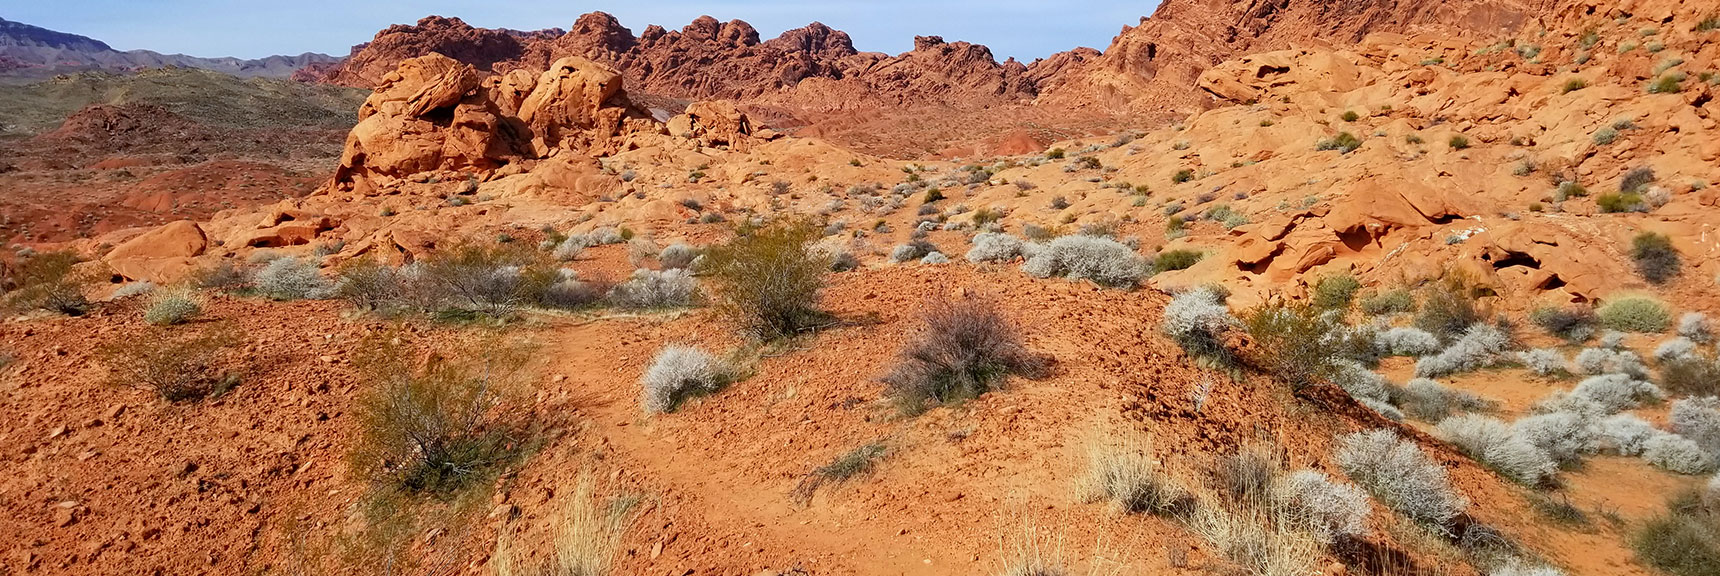 Connecting to a Trail in the Red Rock Hills South of Elephant Rock Loop in Valley of Fire State Park, Nevada